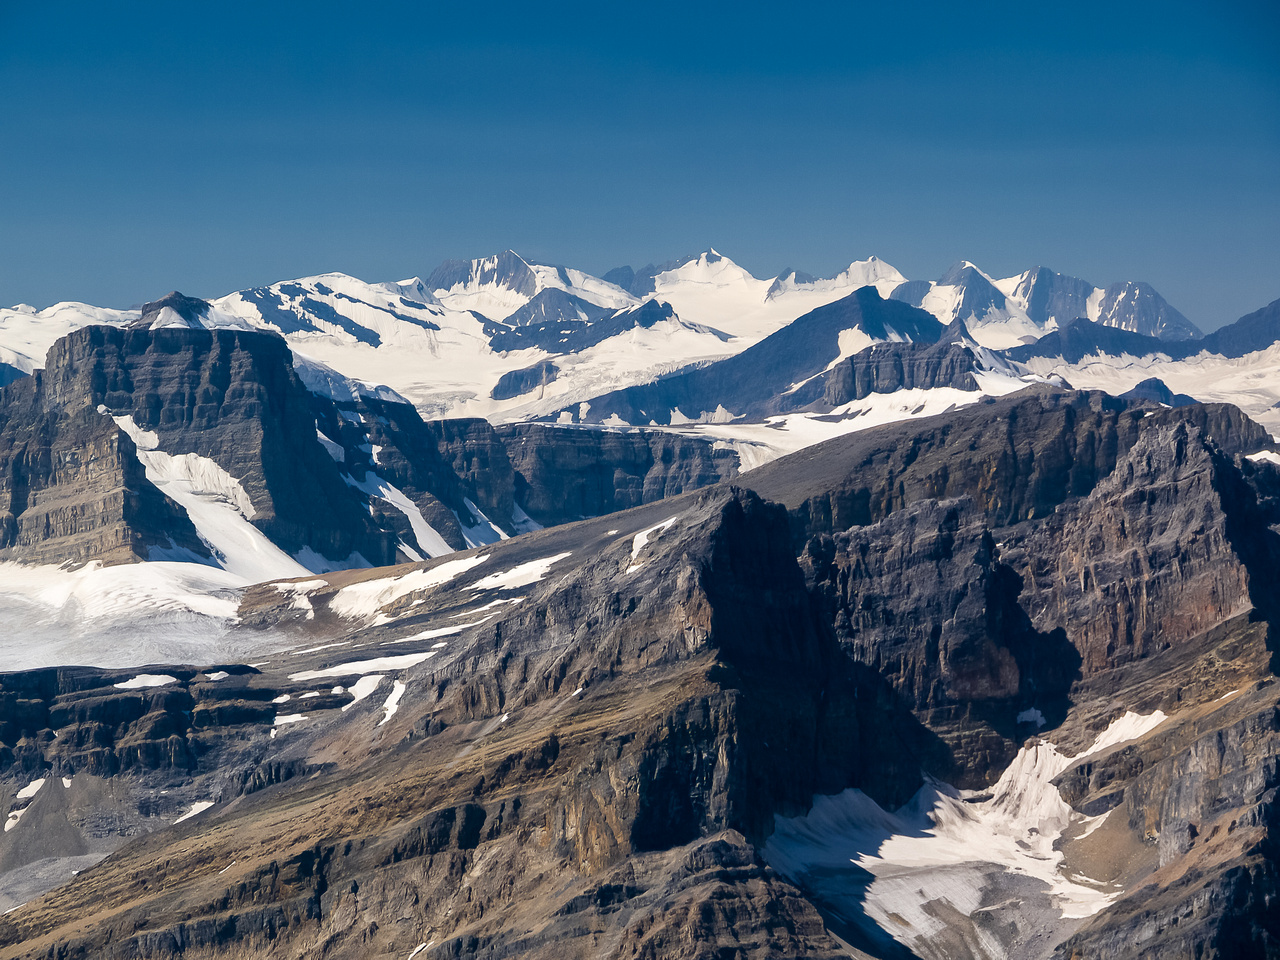 Barbette at left with the Freshfield Icefield (Conway Group) in the distance including Whiteavs, Mount de Margerie, Termier and Conway.